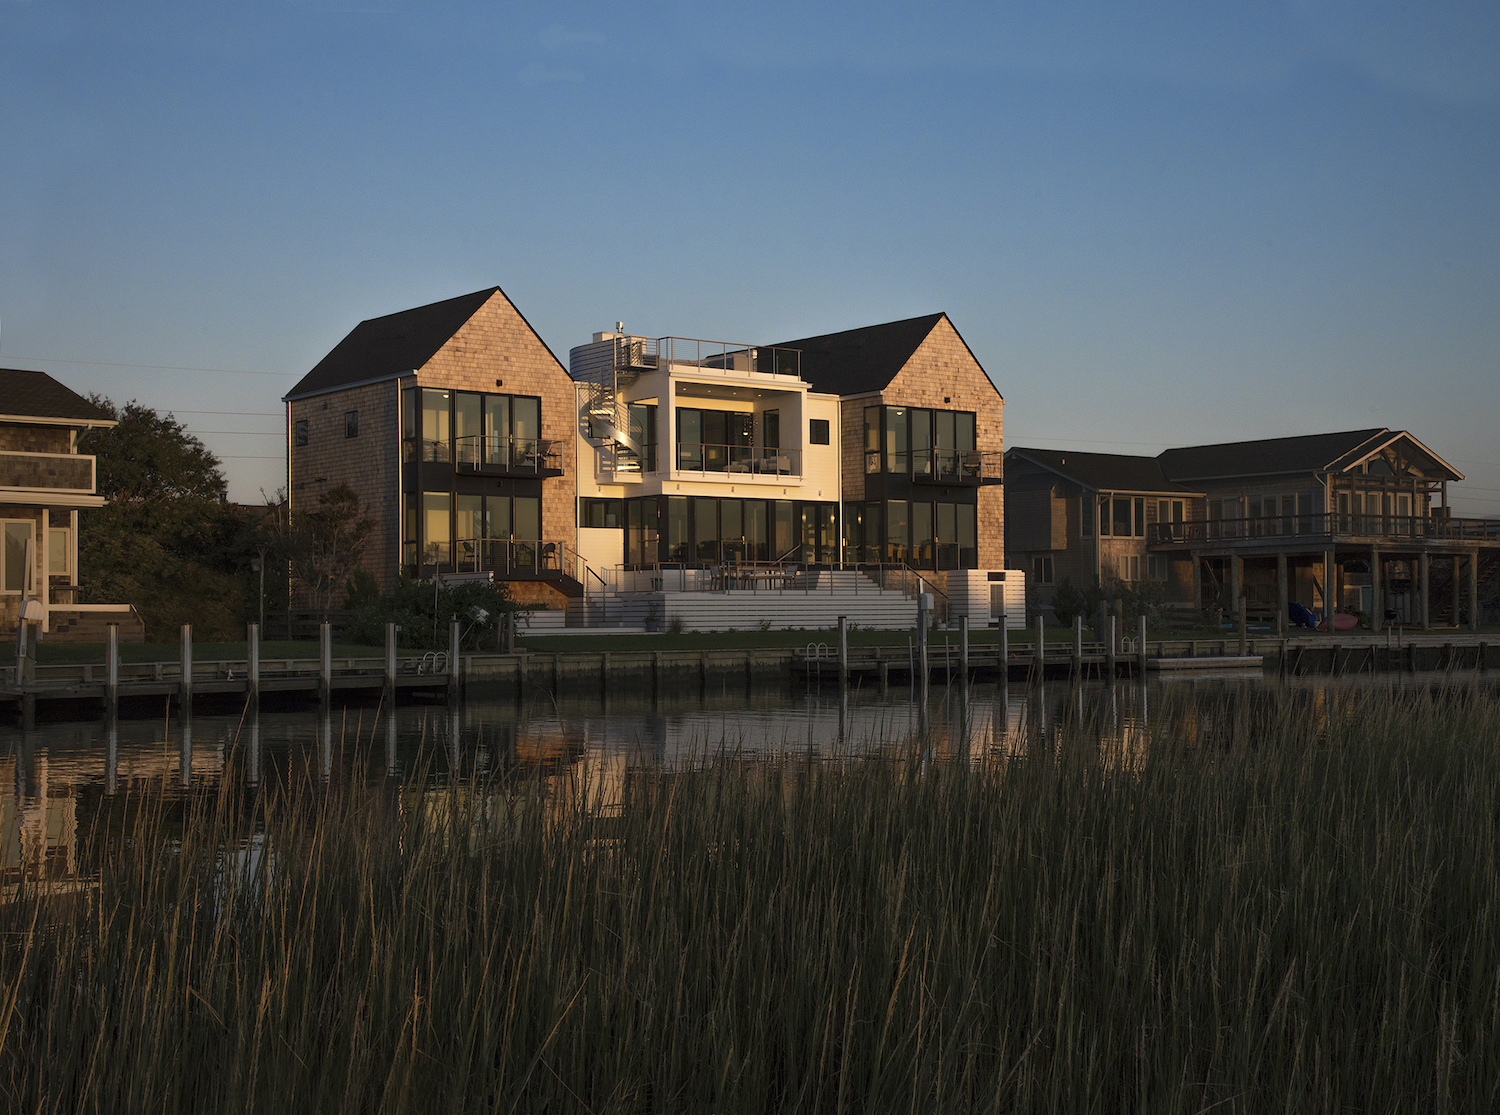 McInturff_Architects_Indian River Bay_House_19.jpg